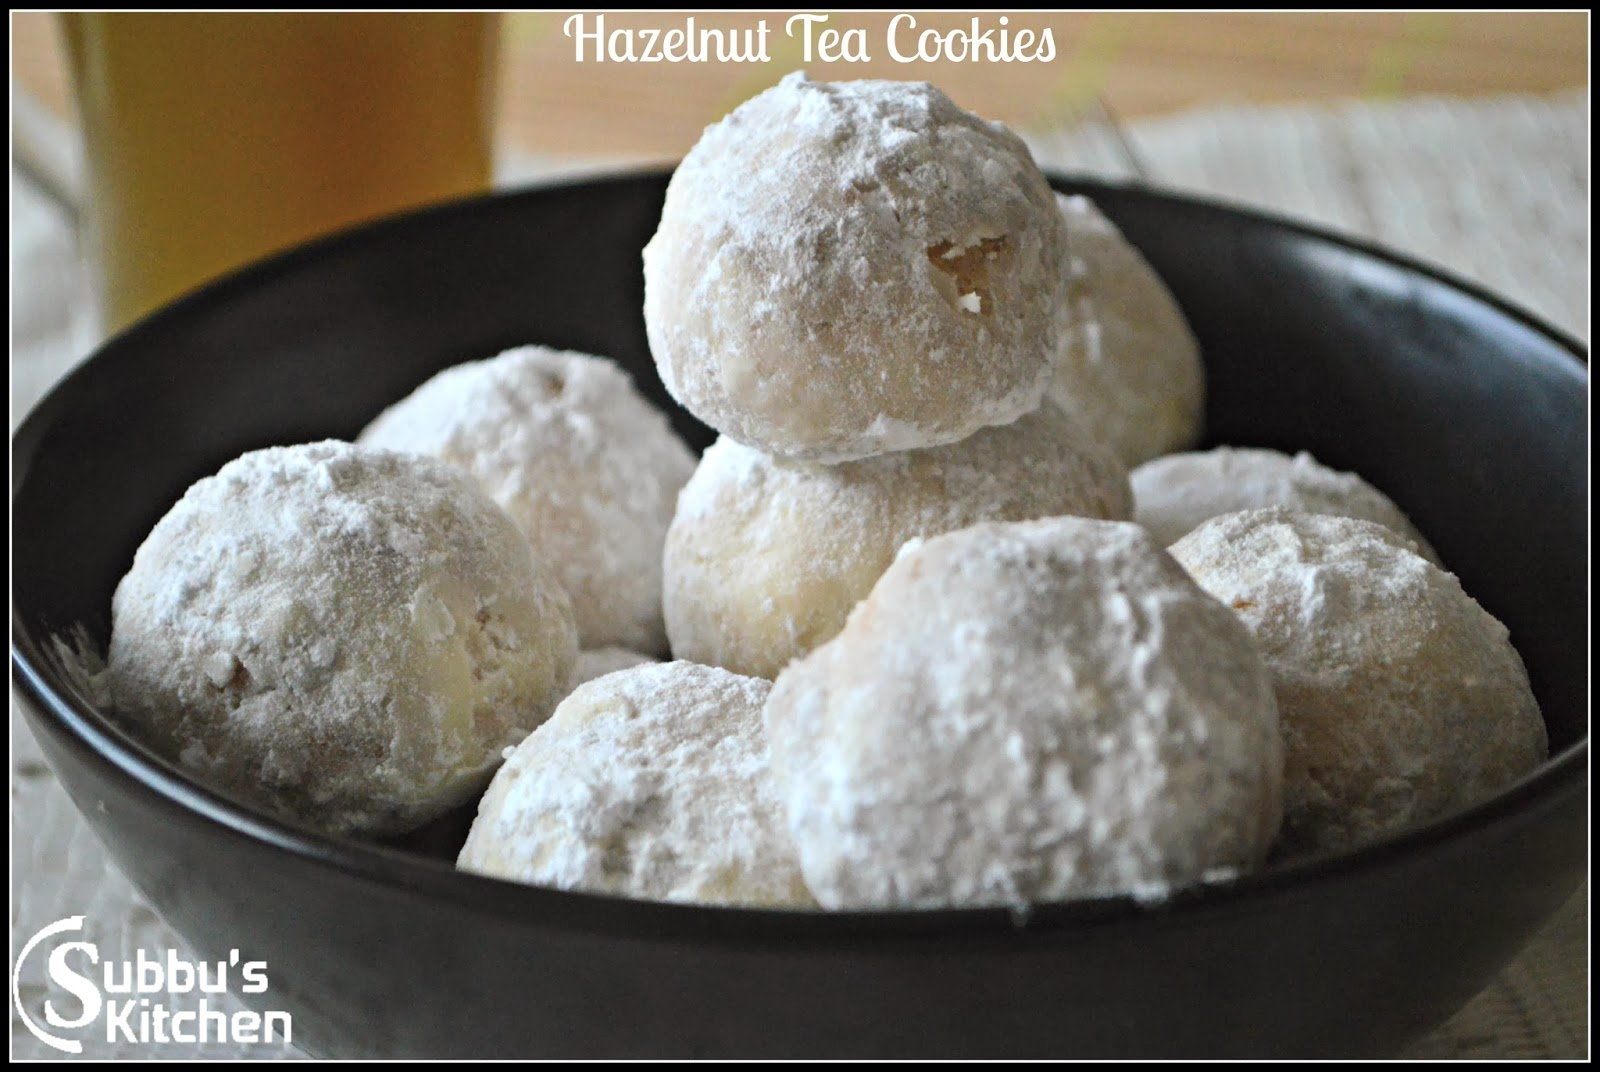 Hazelnut Tea Cookies (Tea Cakes)